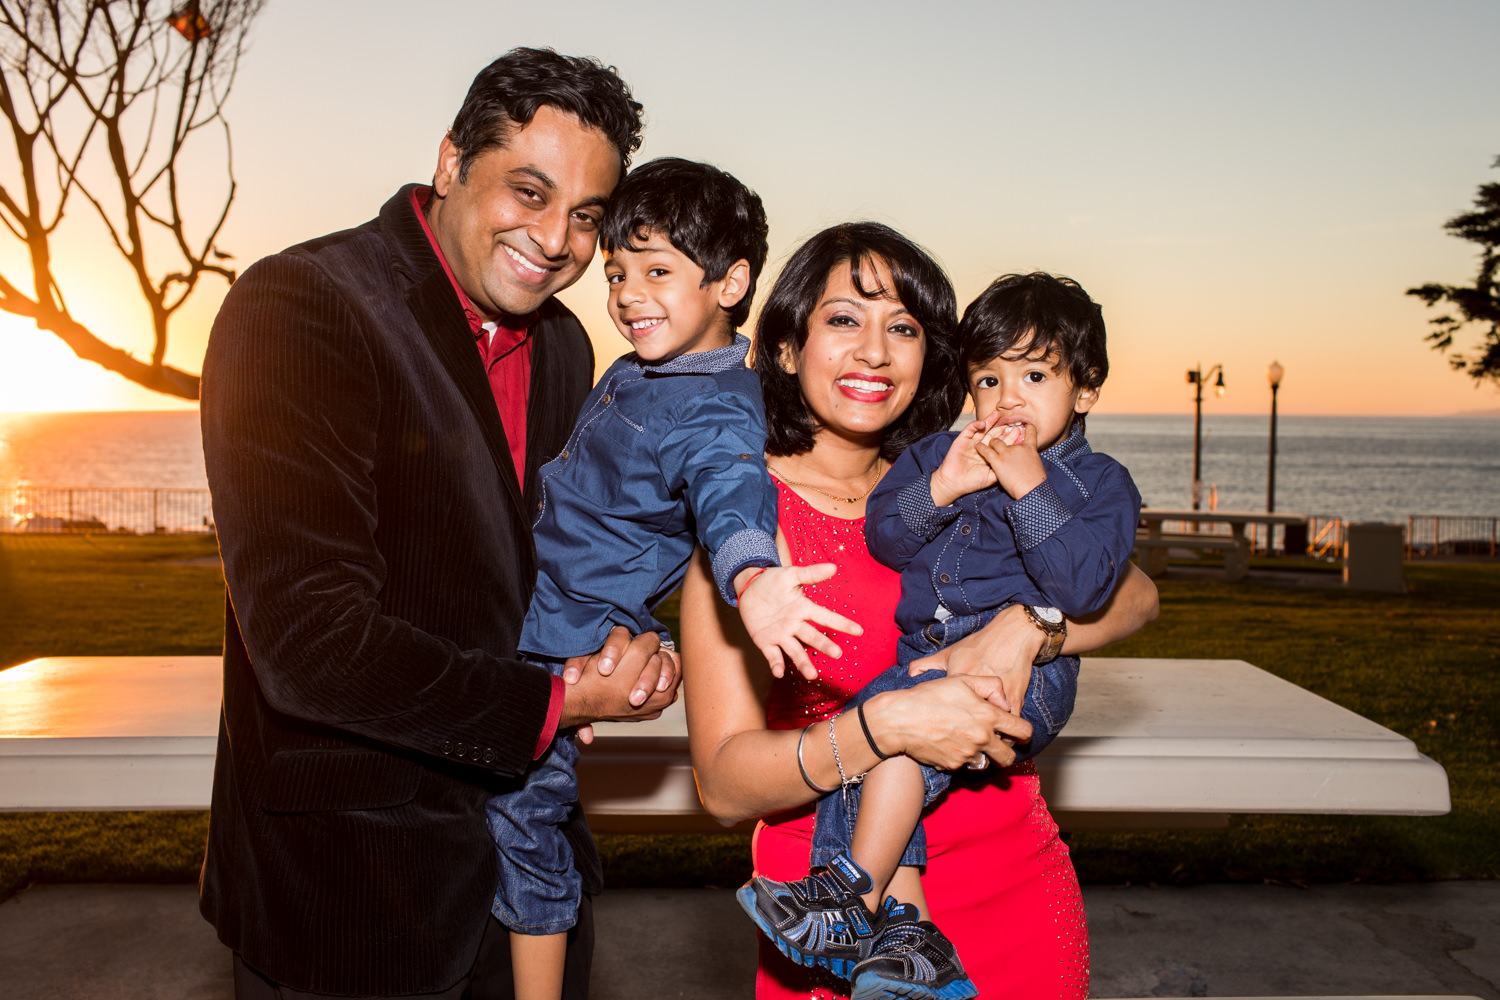 redondobeach-photographer-portraits-family-park-outdoor-sunset-_0012